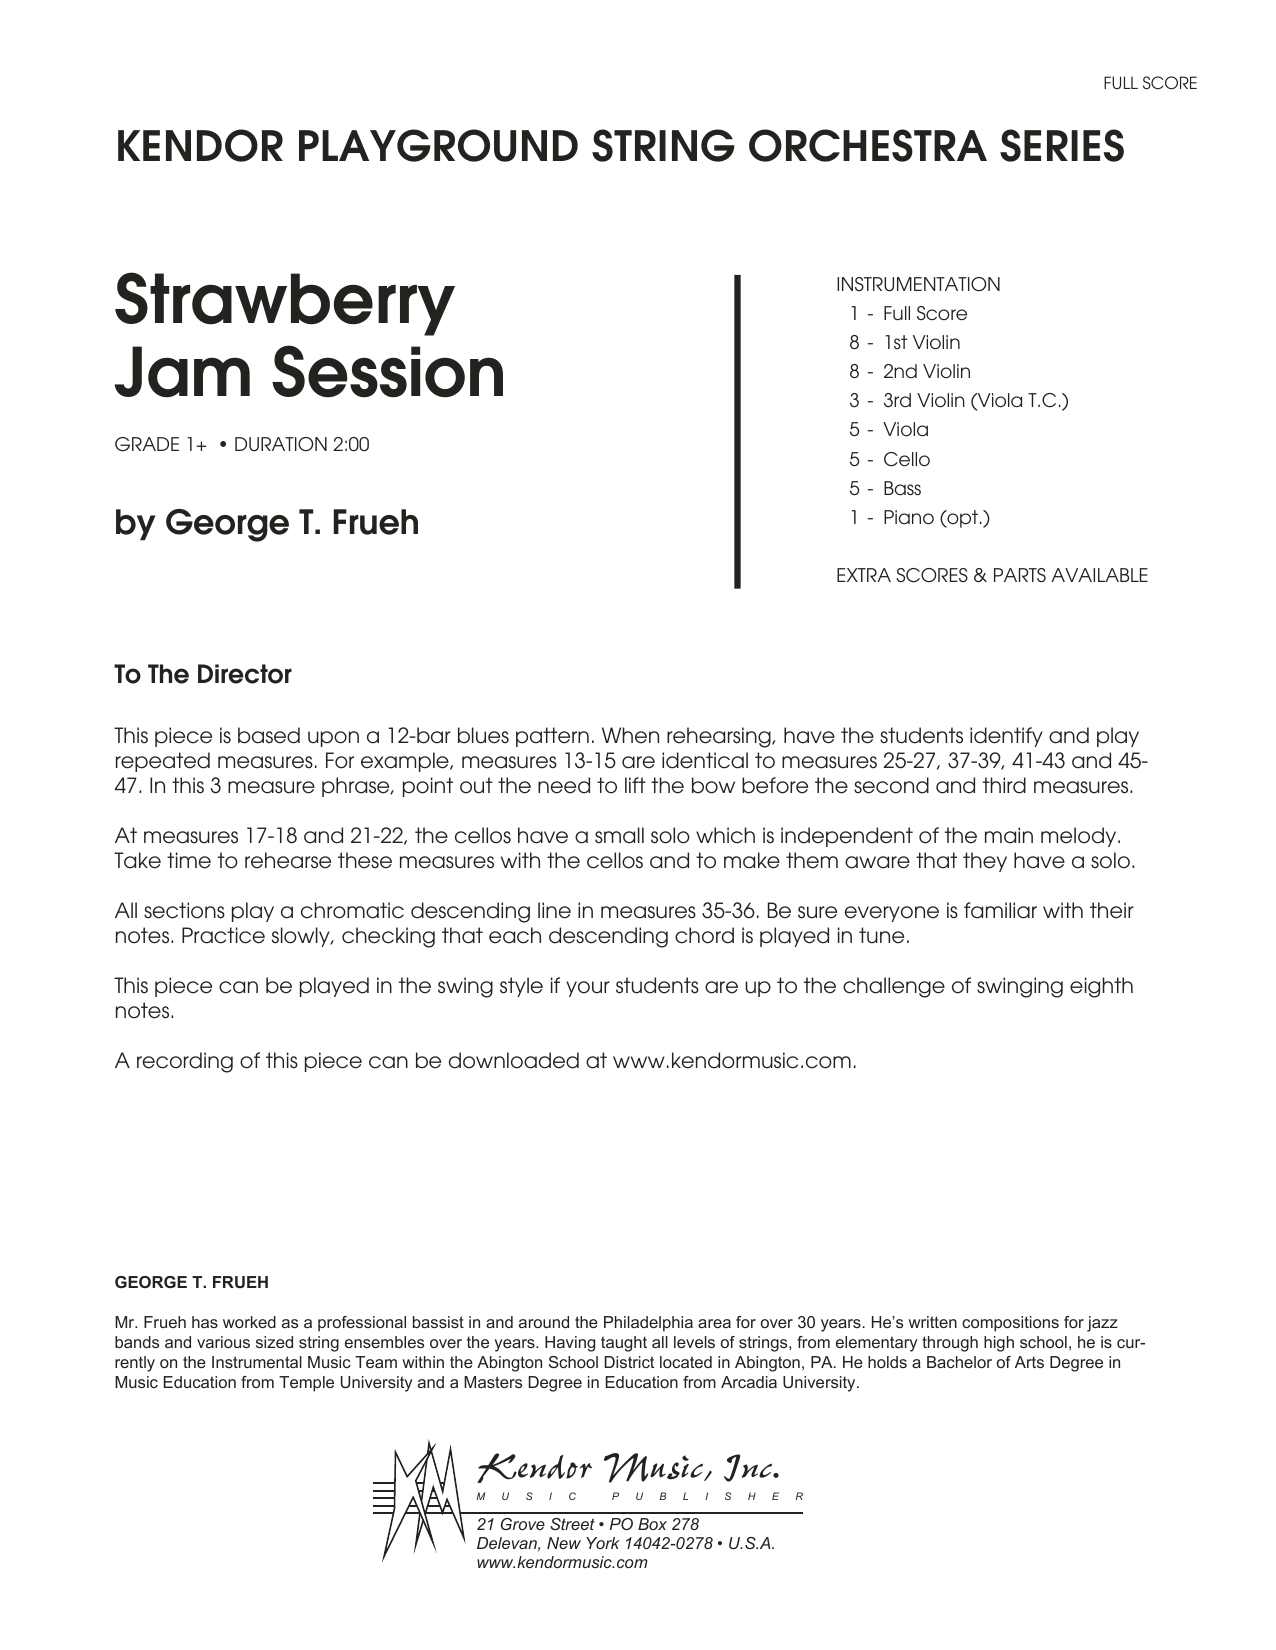 Strawberry Jam Session - Full Score